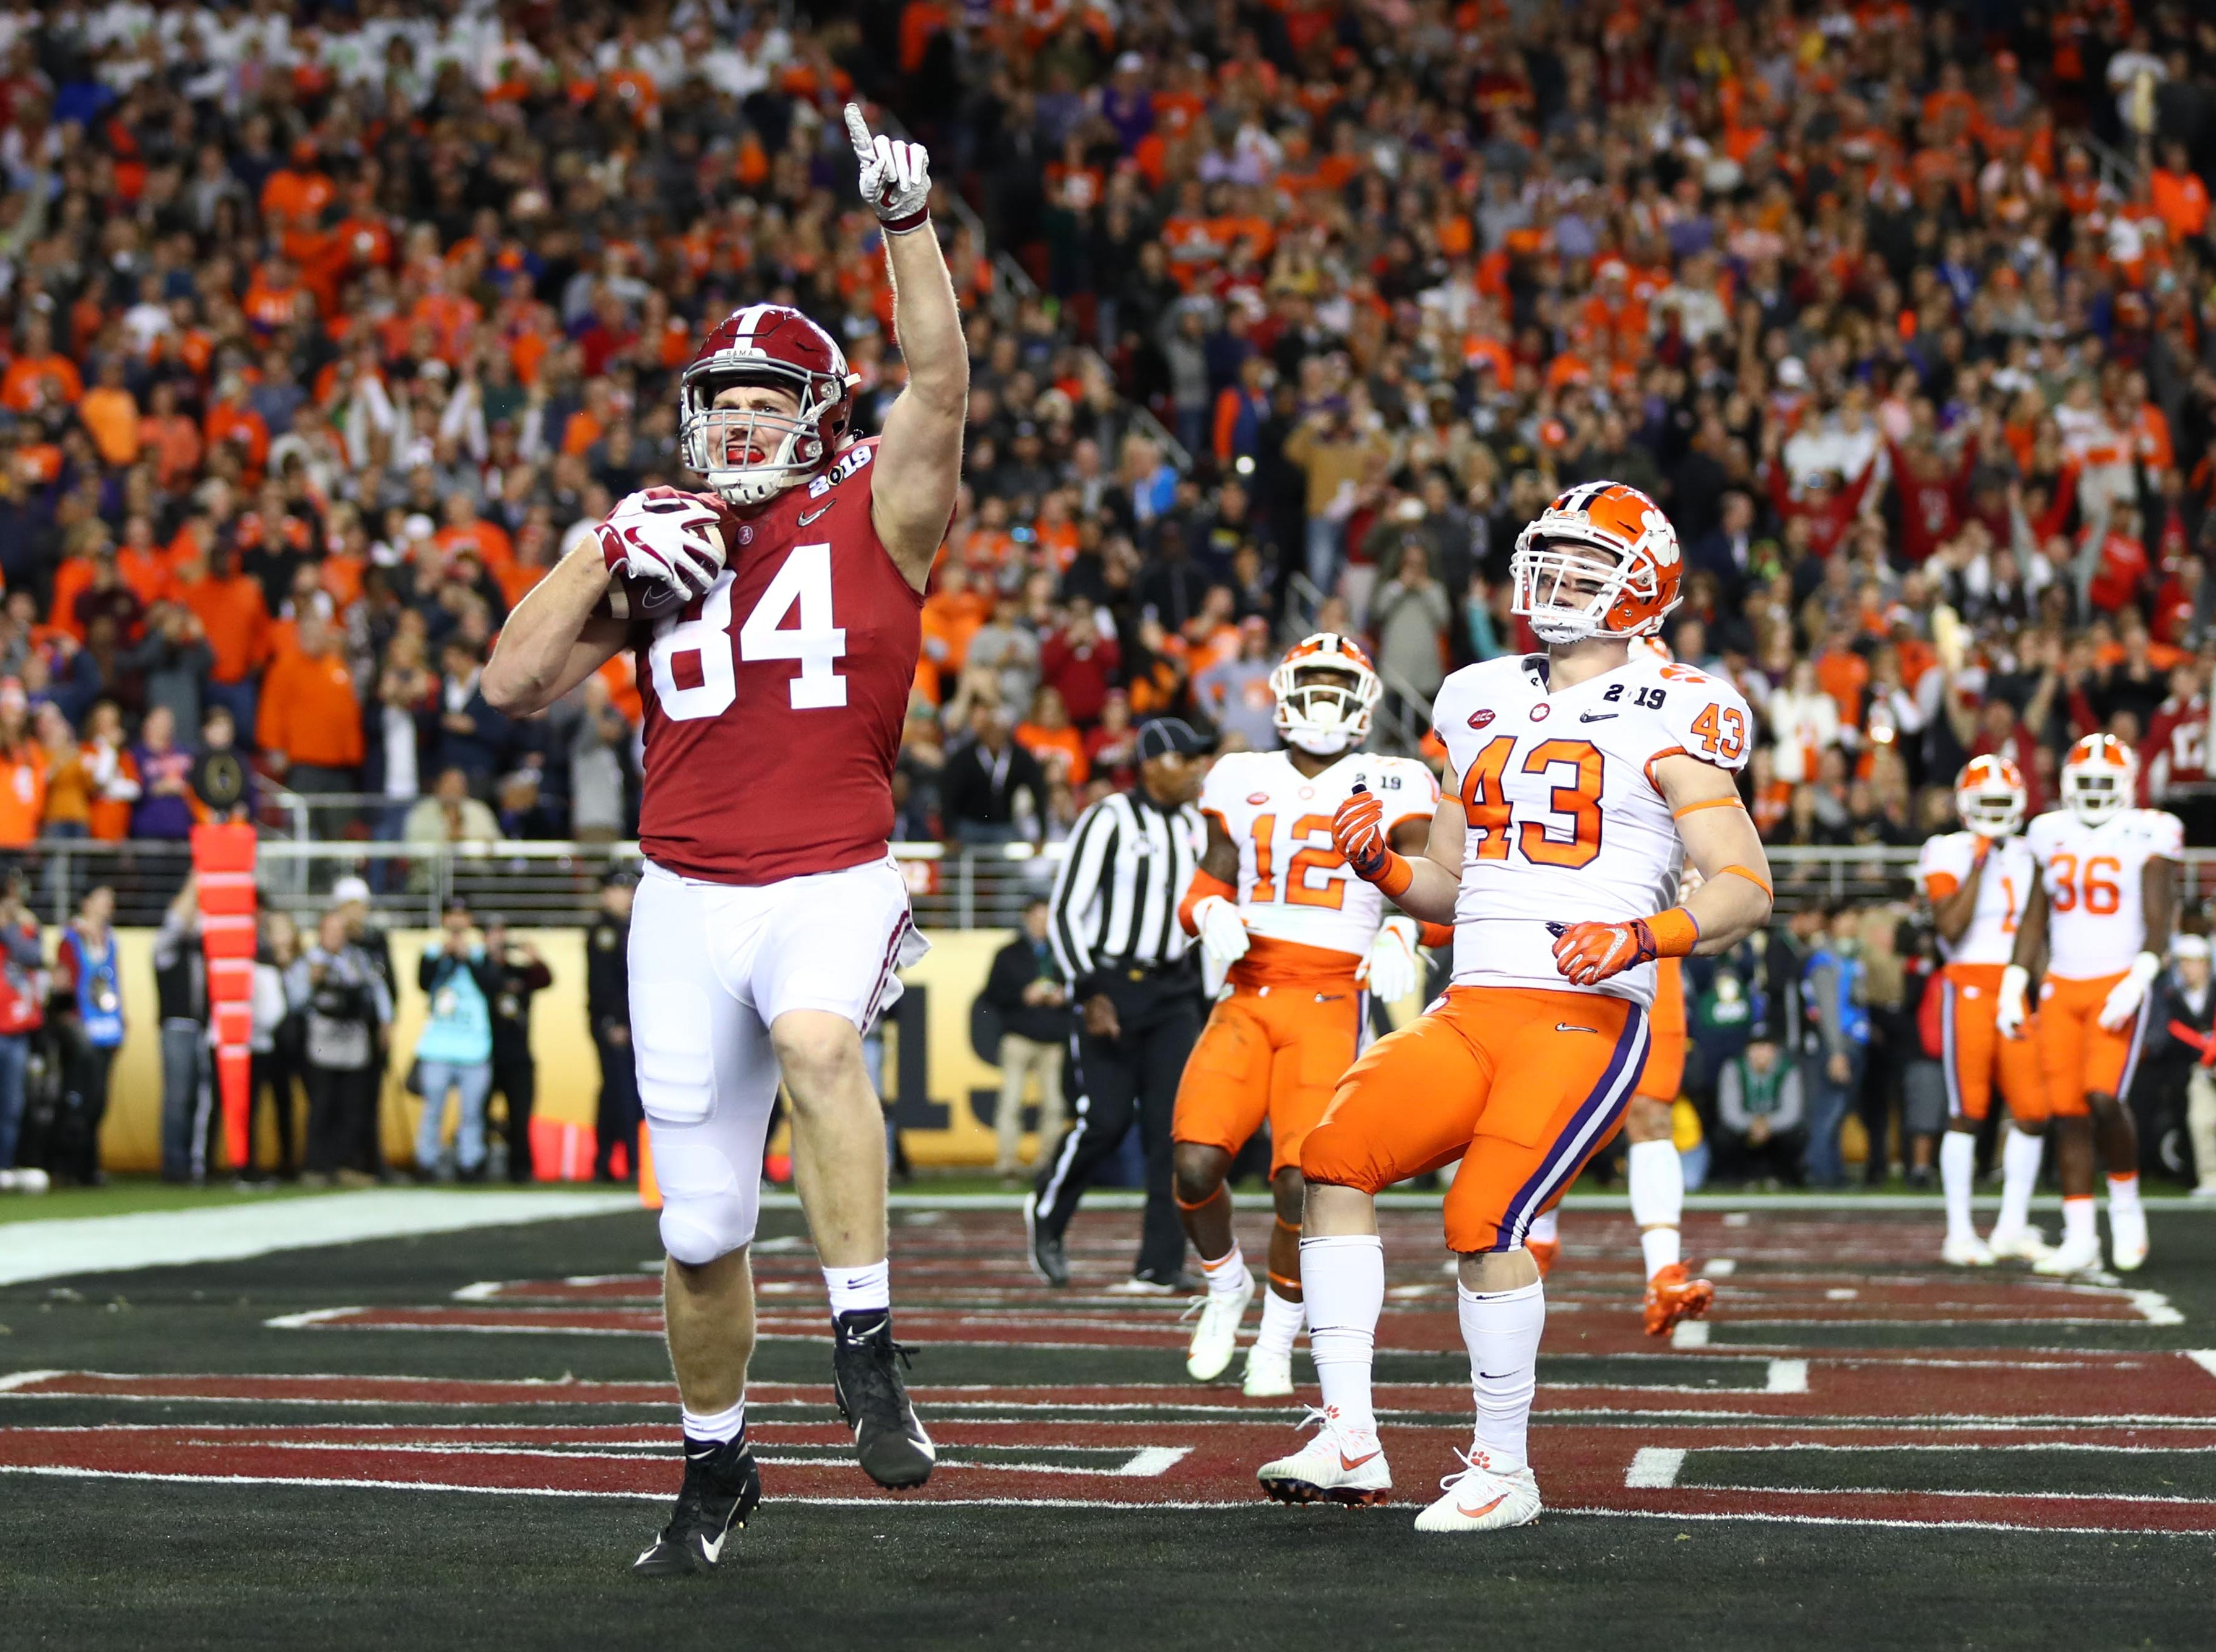 Alabama tight end Hale Hentges celebrates after catching a touchdown in the first quarter.